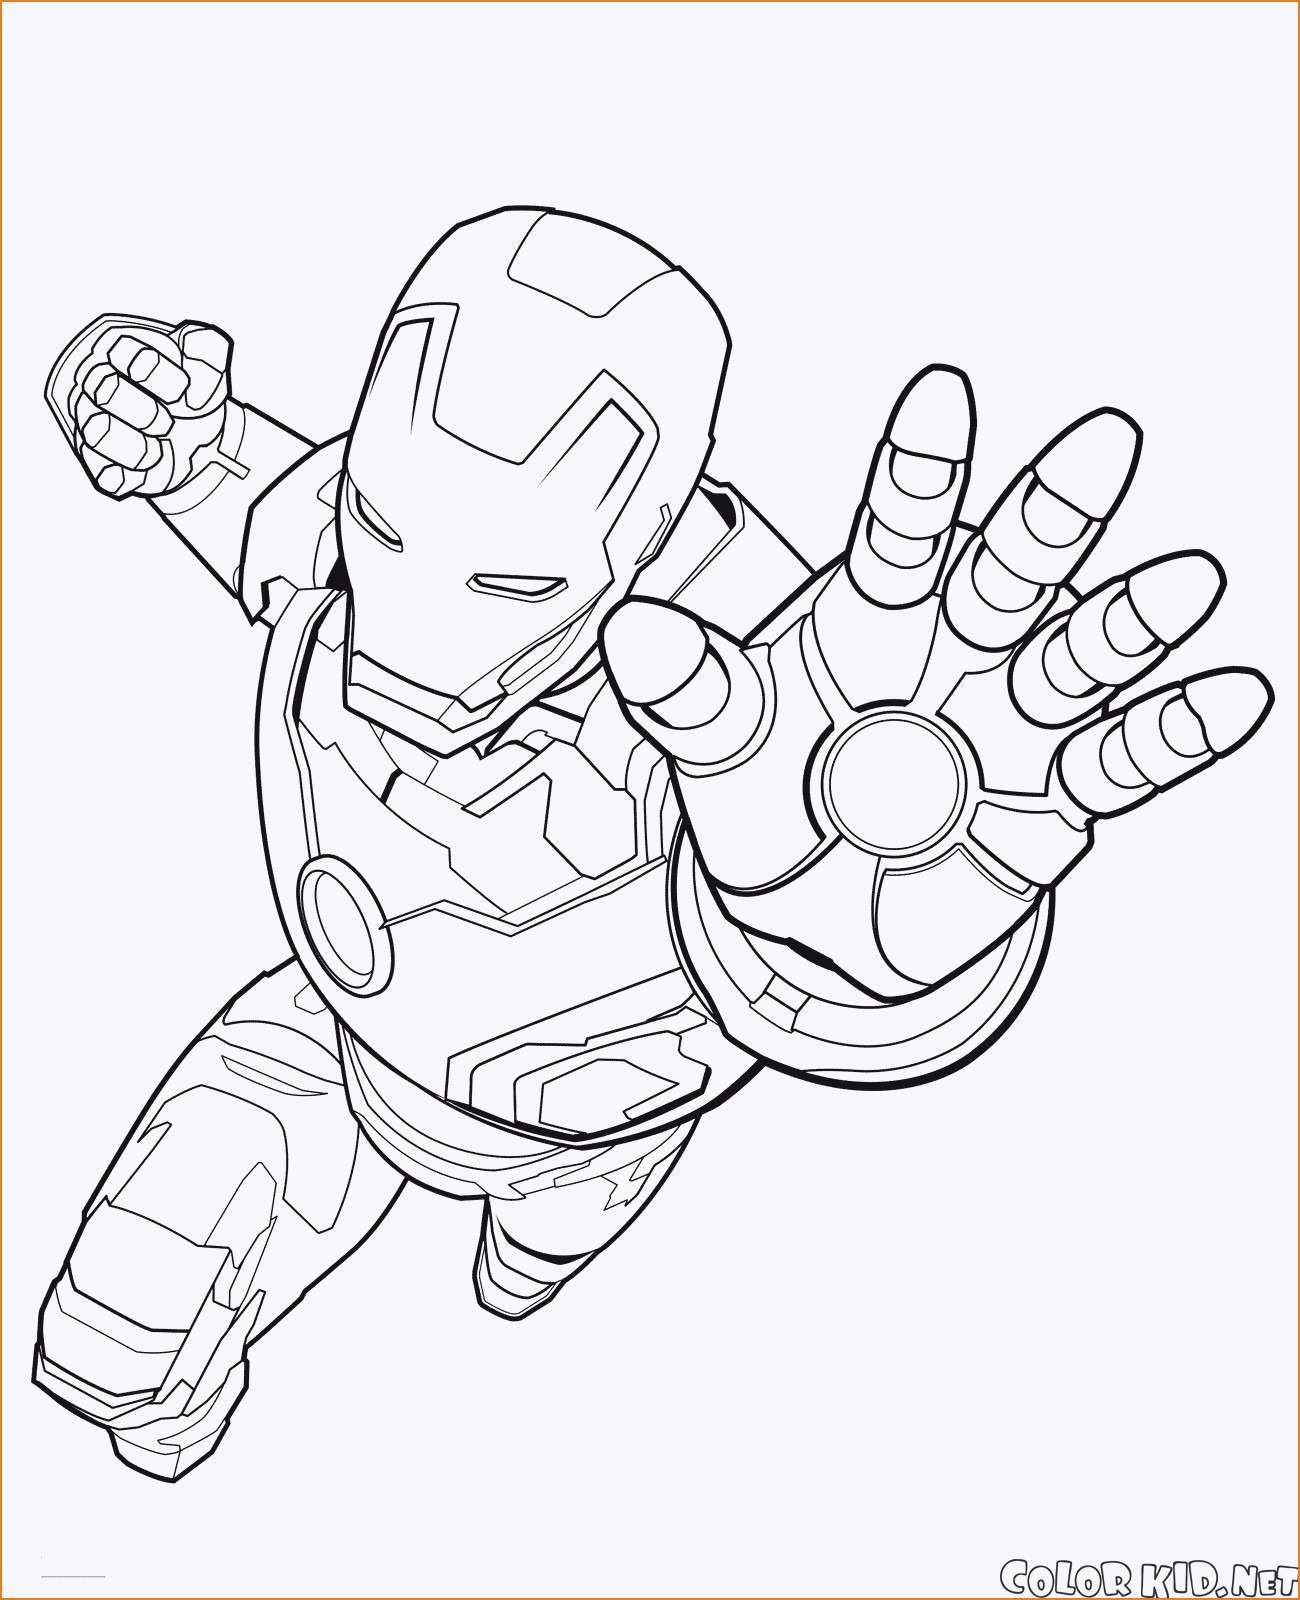 lego superheroes coloring pages Collection-Lego Superheroes Coloring Pages Unique 45 Iron Man Ausmalbilder Zum 2-n